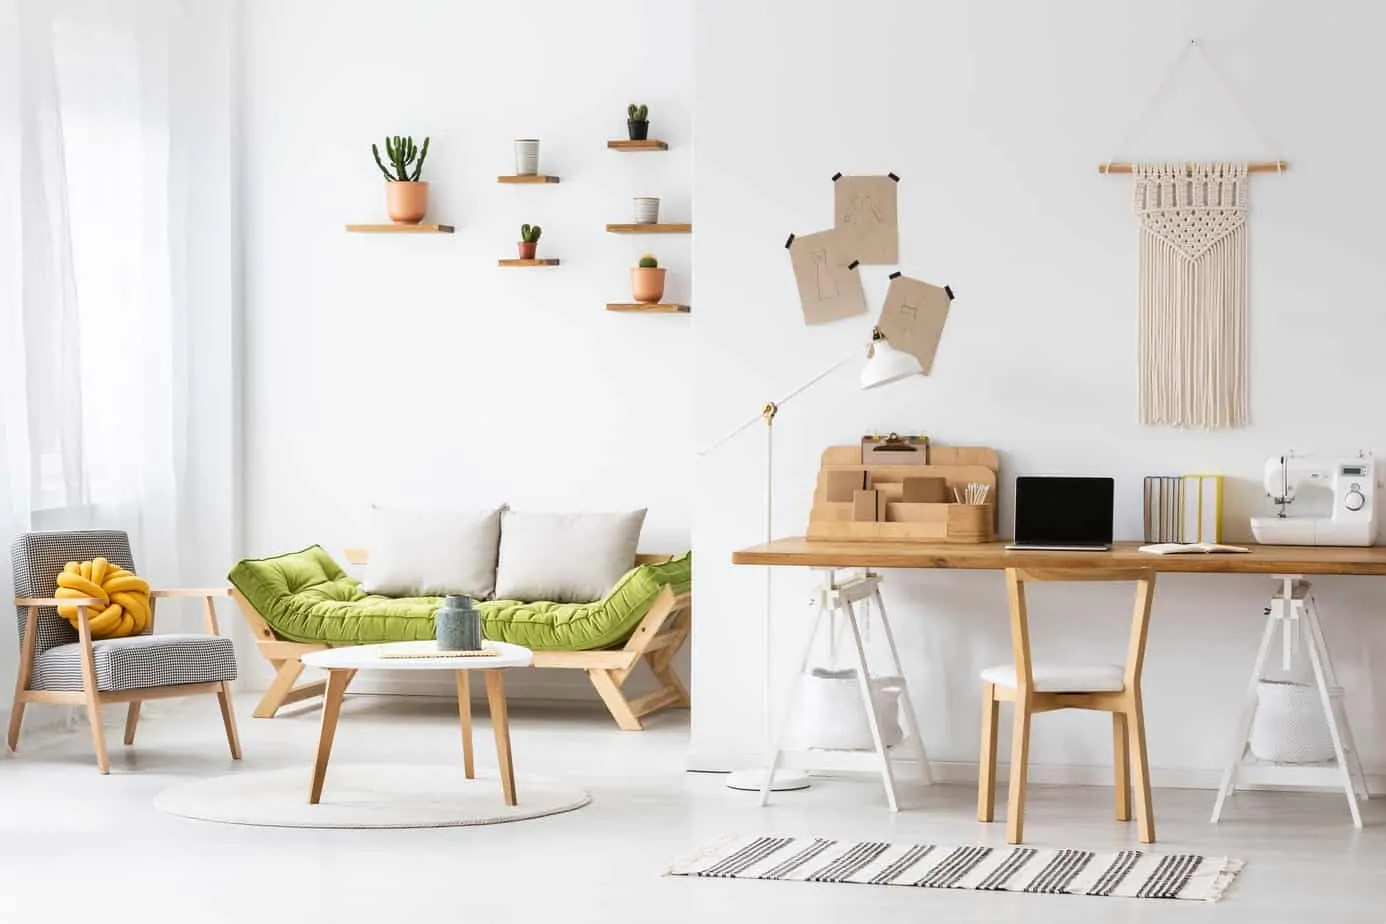 Creating a Minimalist Home and Lifestyle with more time and less stress